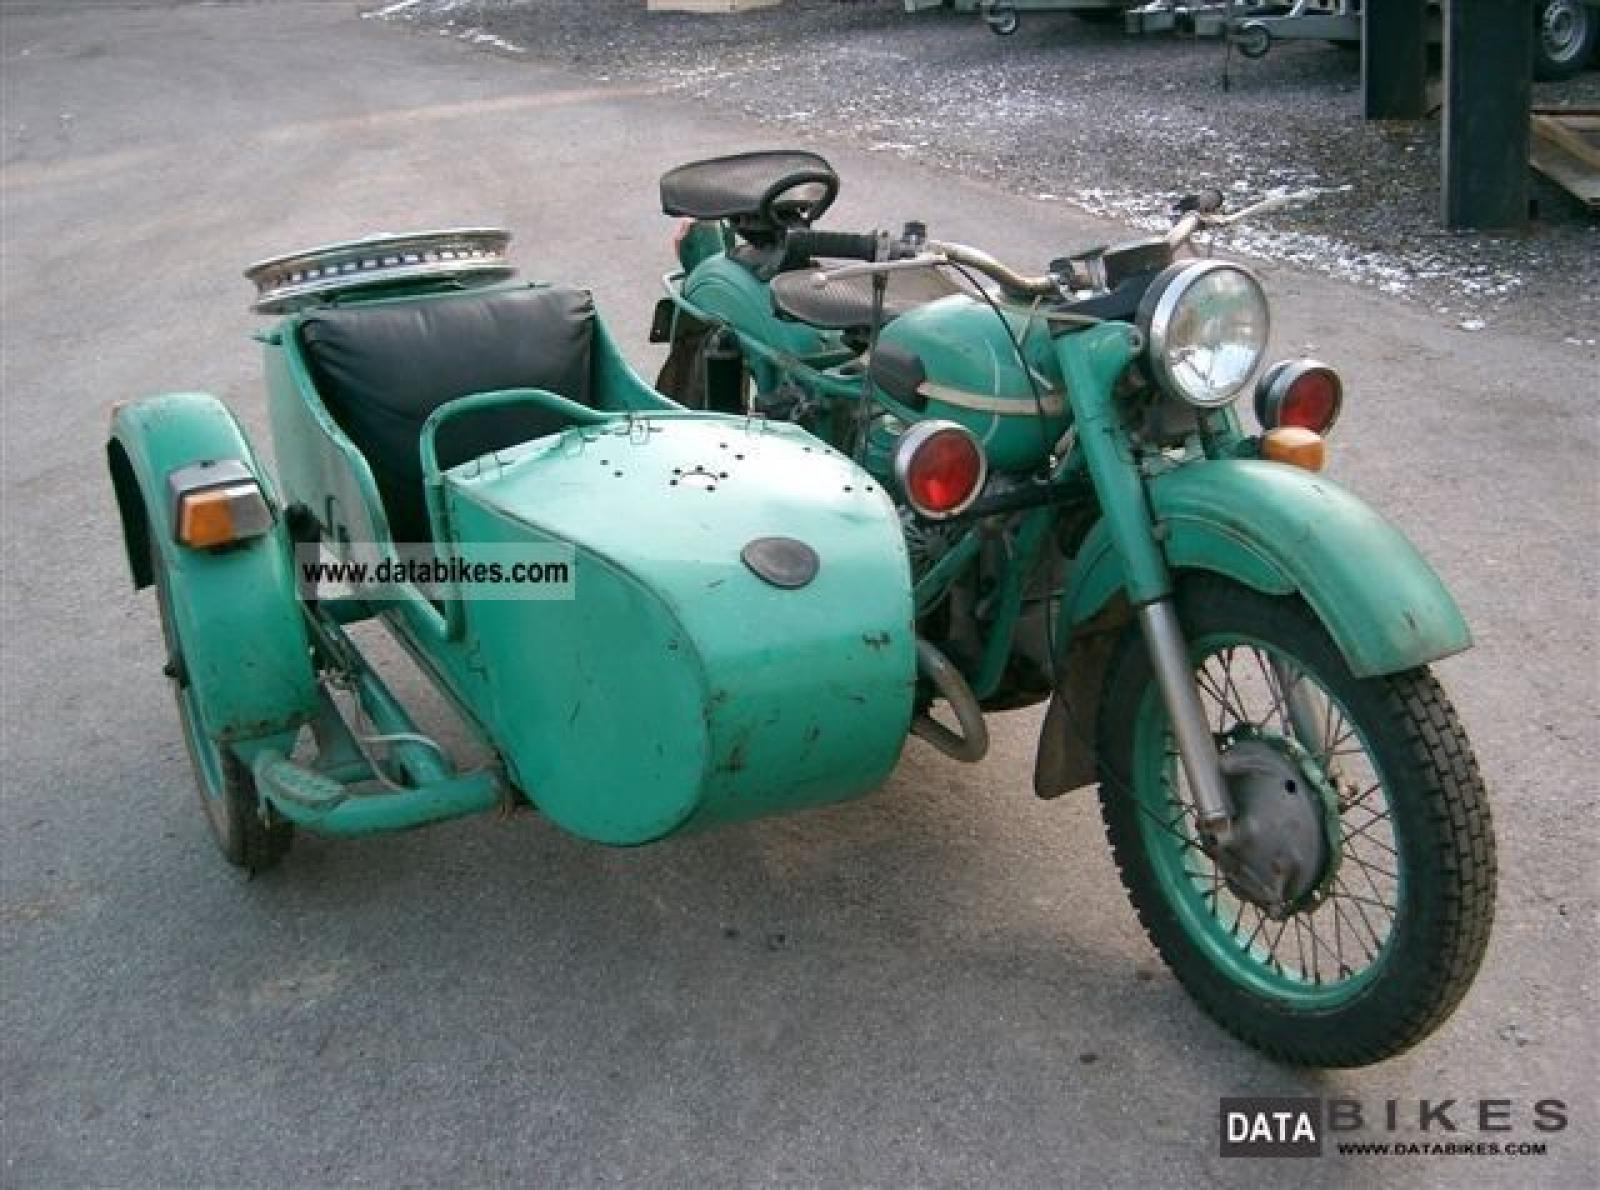 Ural M-63 with sidecar 1980 images #127381